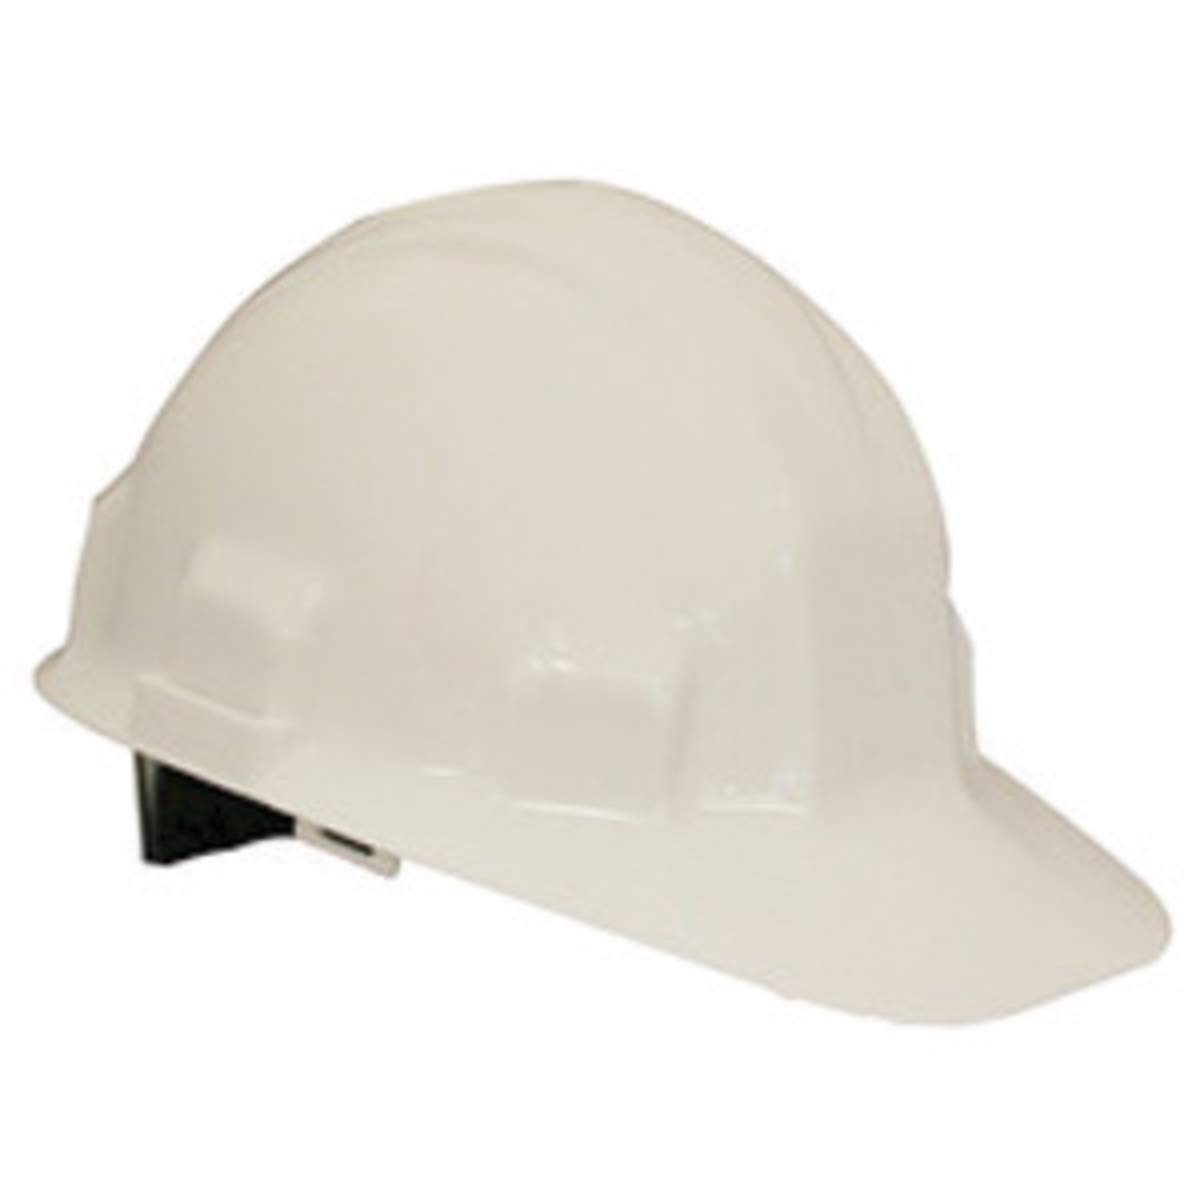 Cheap White Cap Safety, find White Cap Safety deals on line at